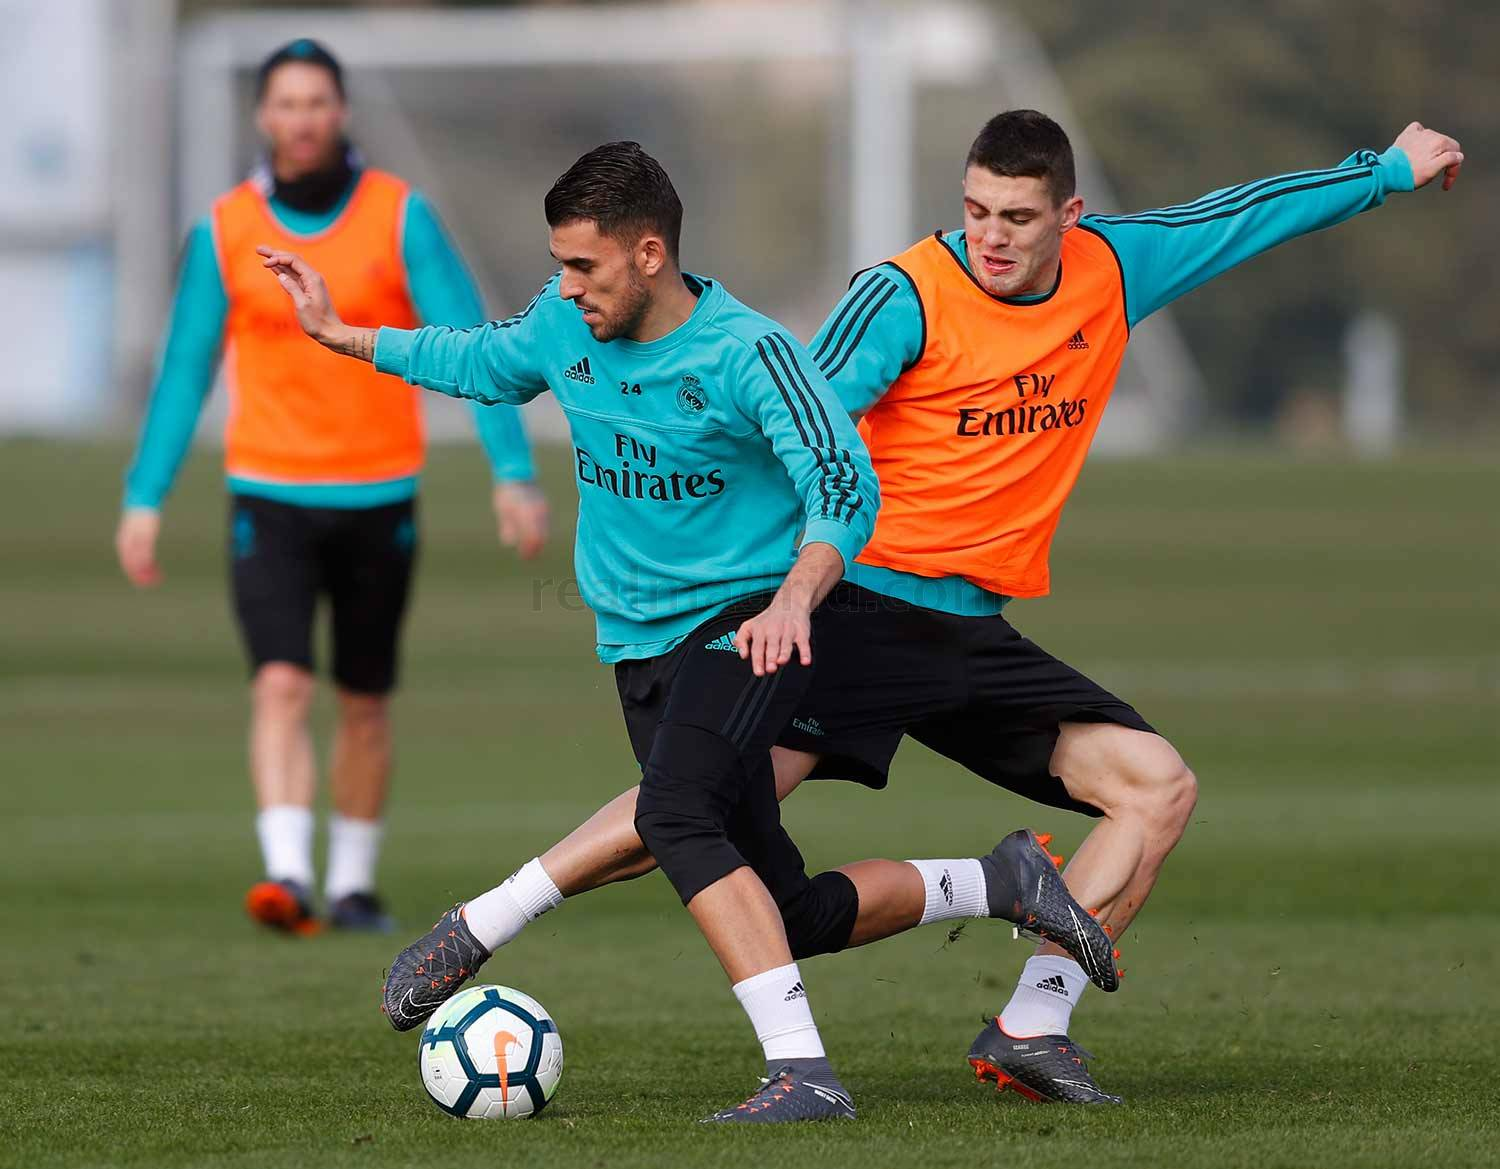 Real Madrid - Entrenamiento del Real Madrid - 17-02-2018